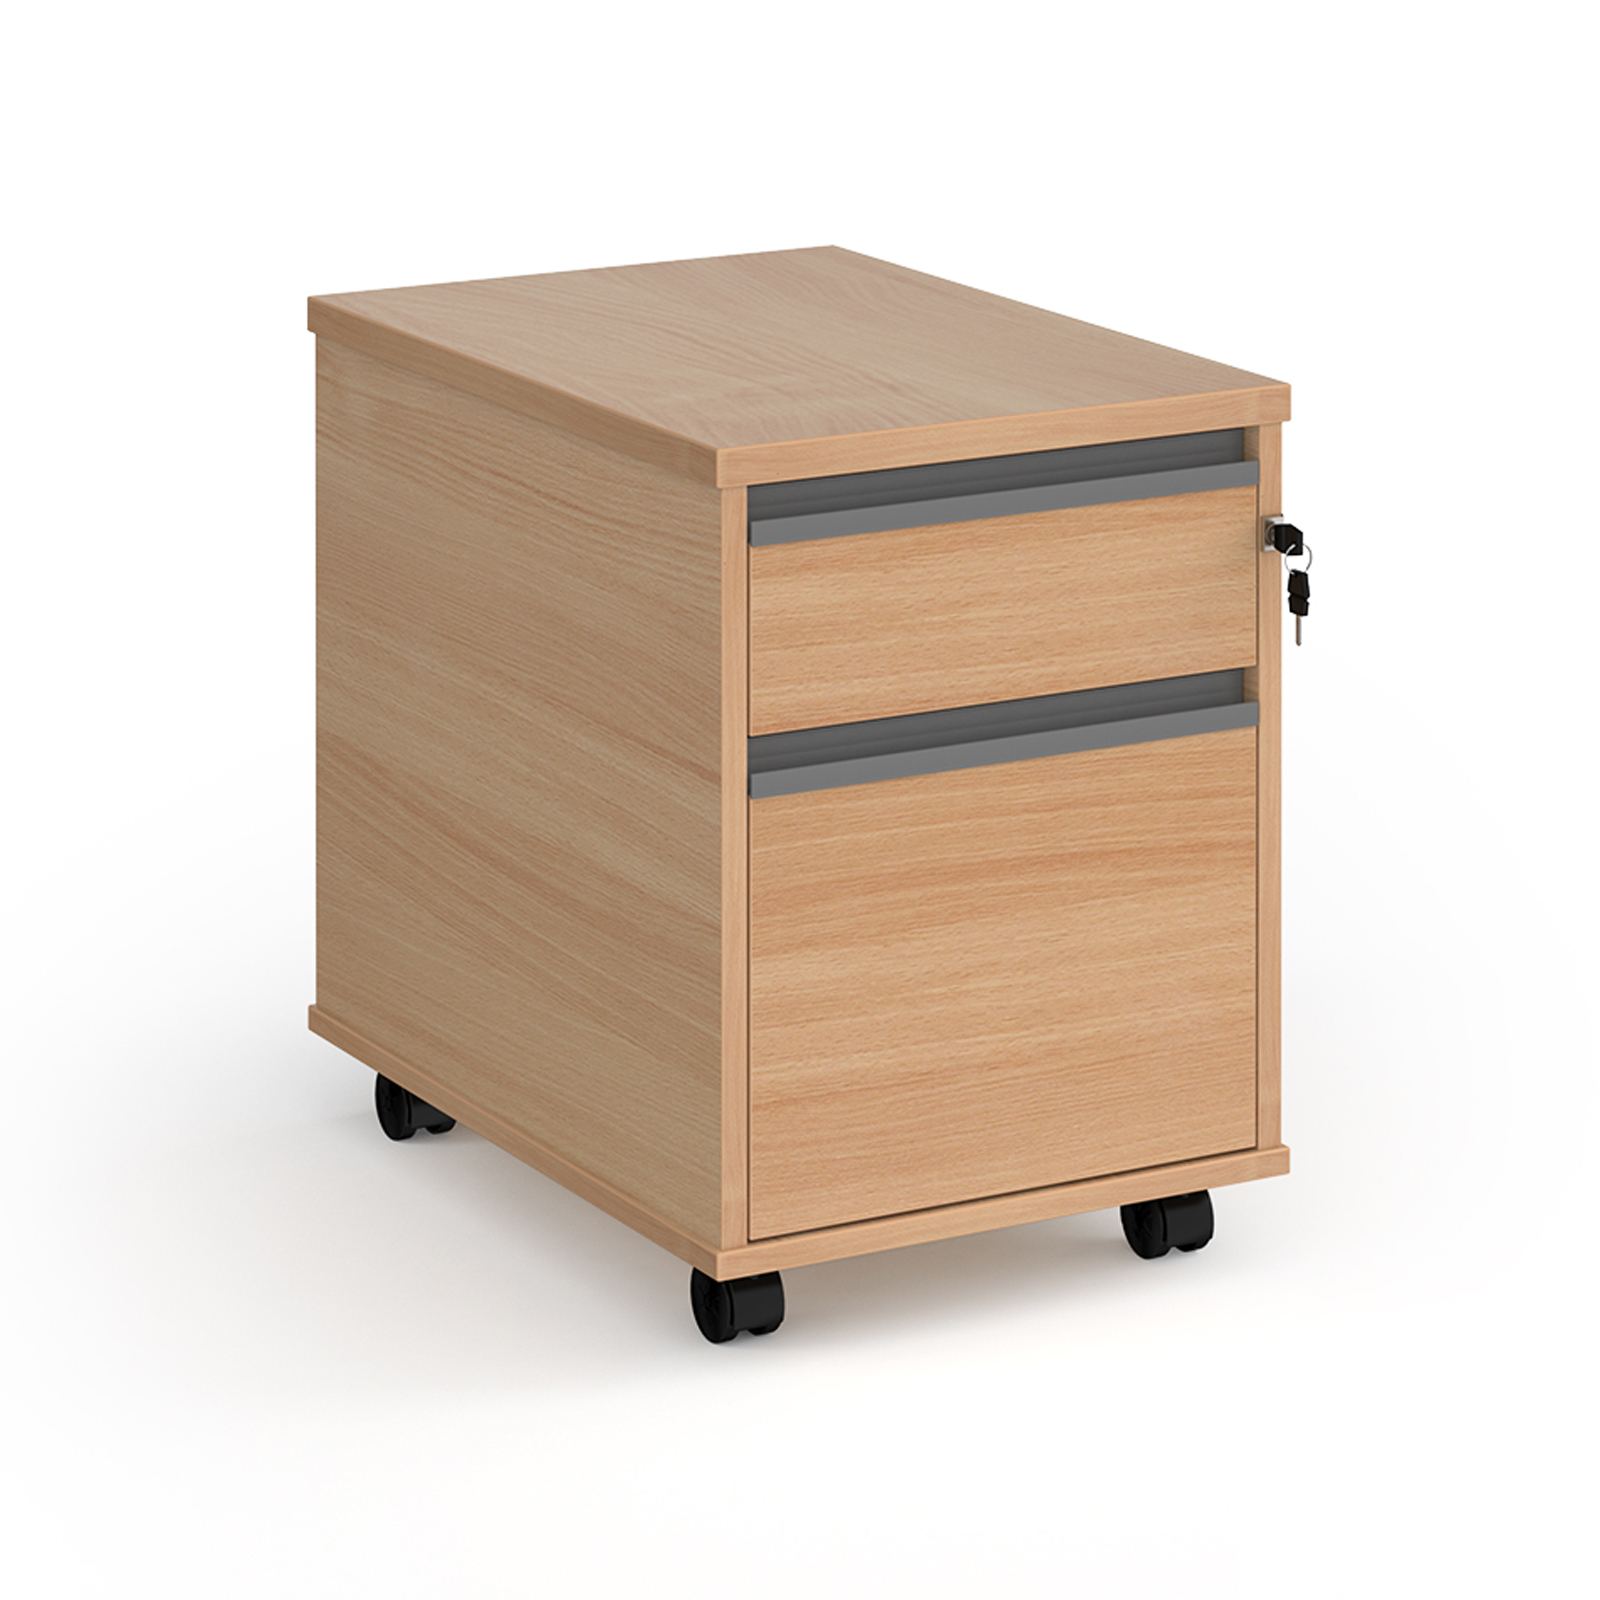 Desk Drawers Contract mobile pedestal